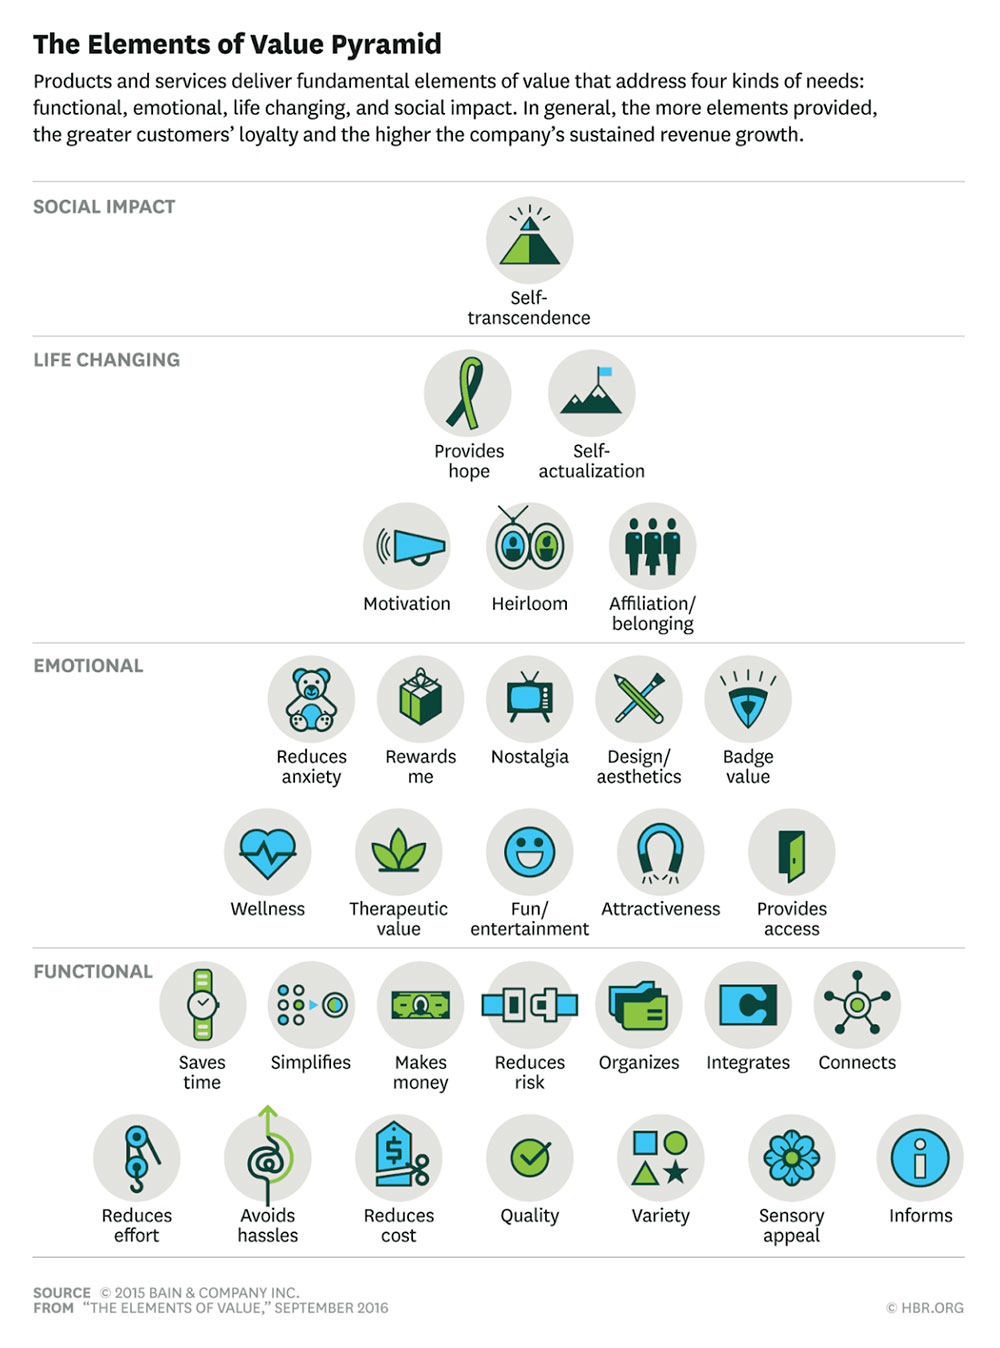 customer-relations-elements-of-value-pyramid